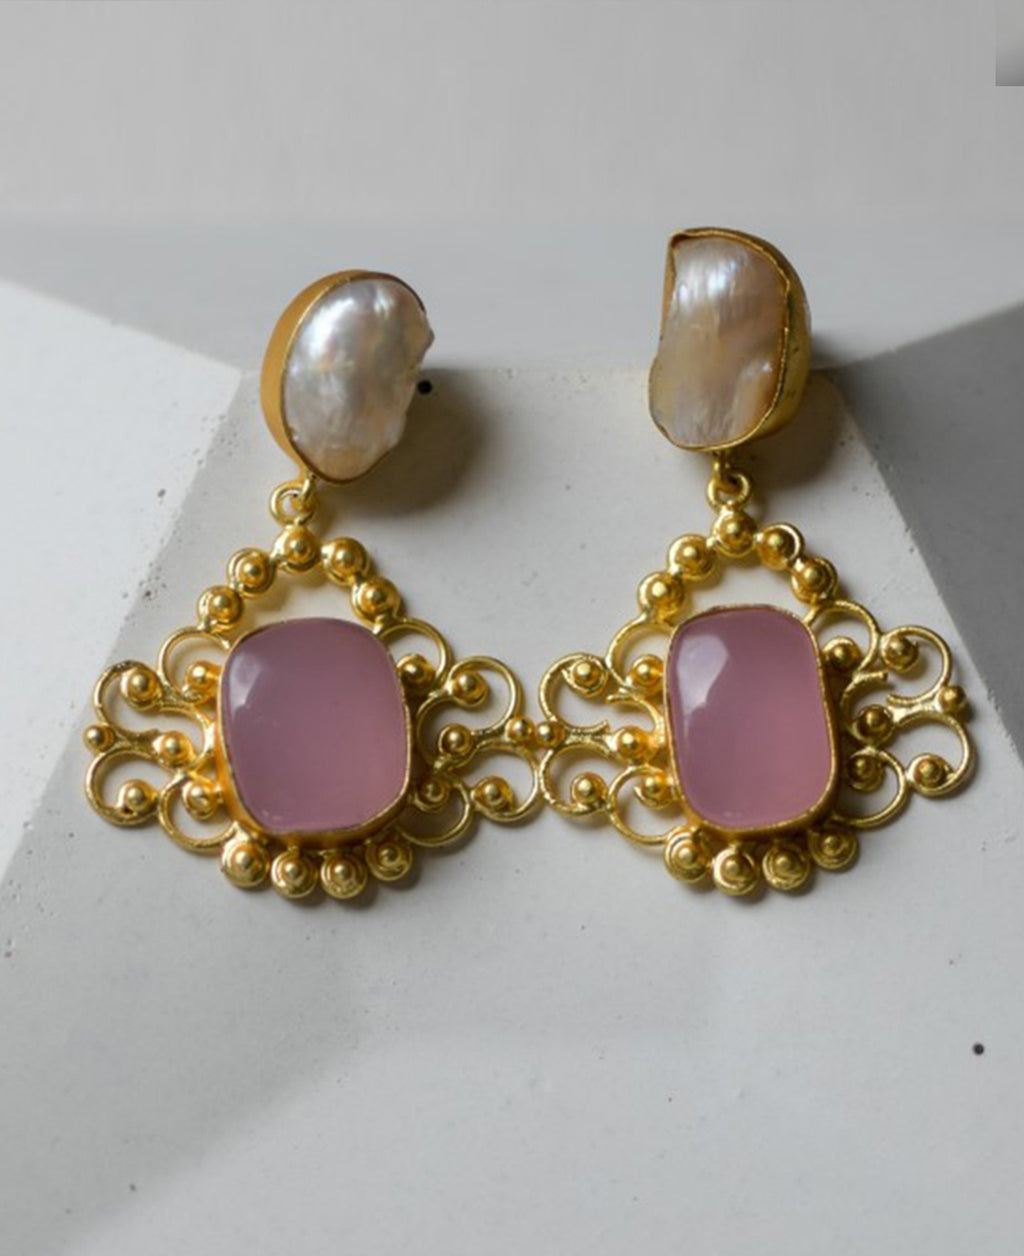 Pink stone, gold-plated earrings with natural pearls.